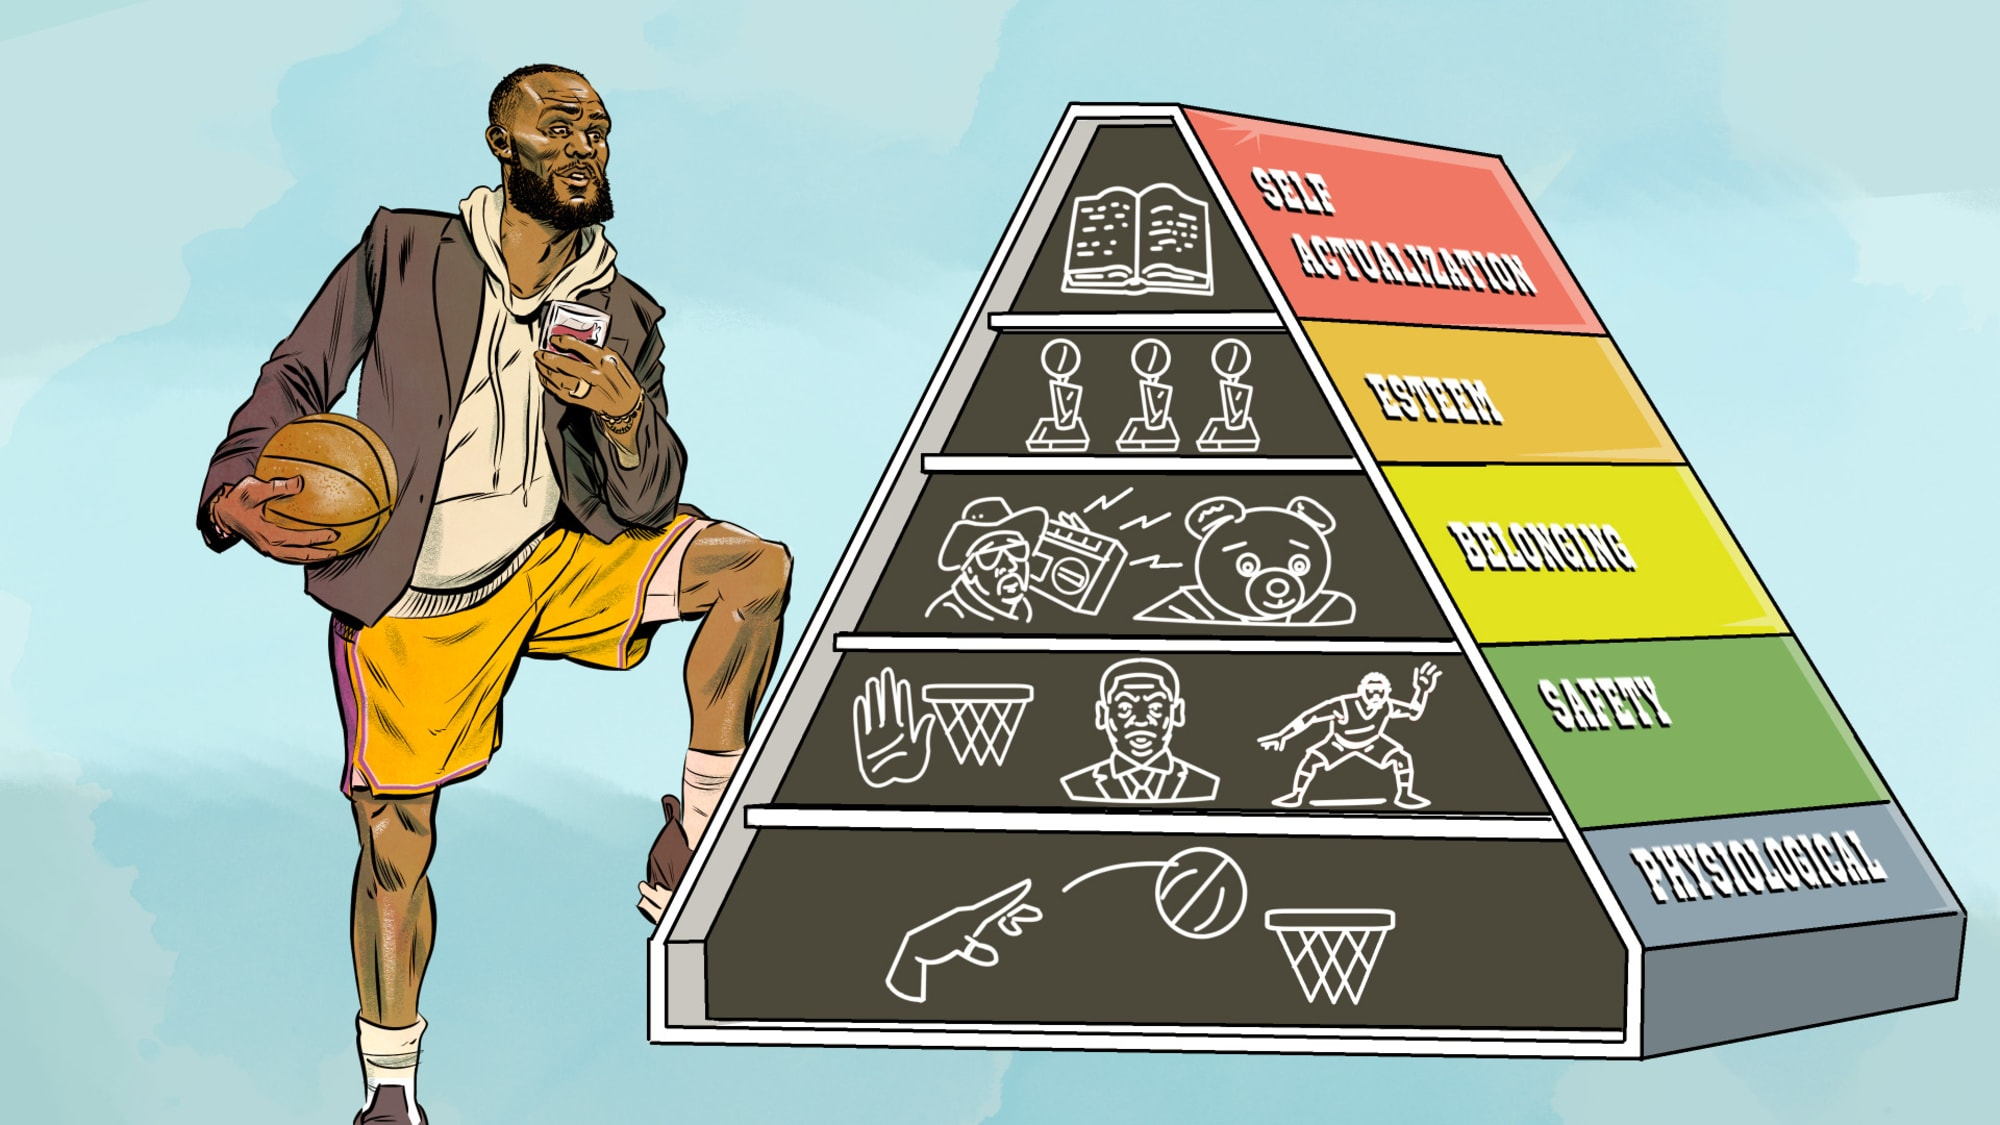 LeBron's hierarchy of needs